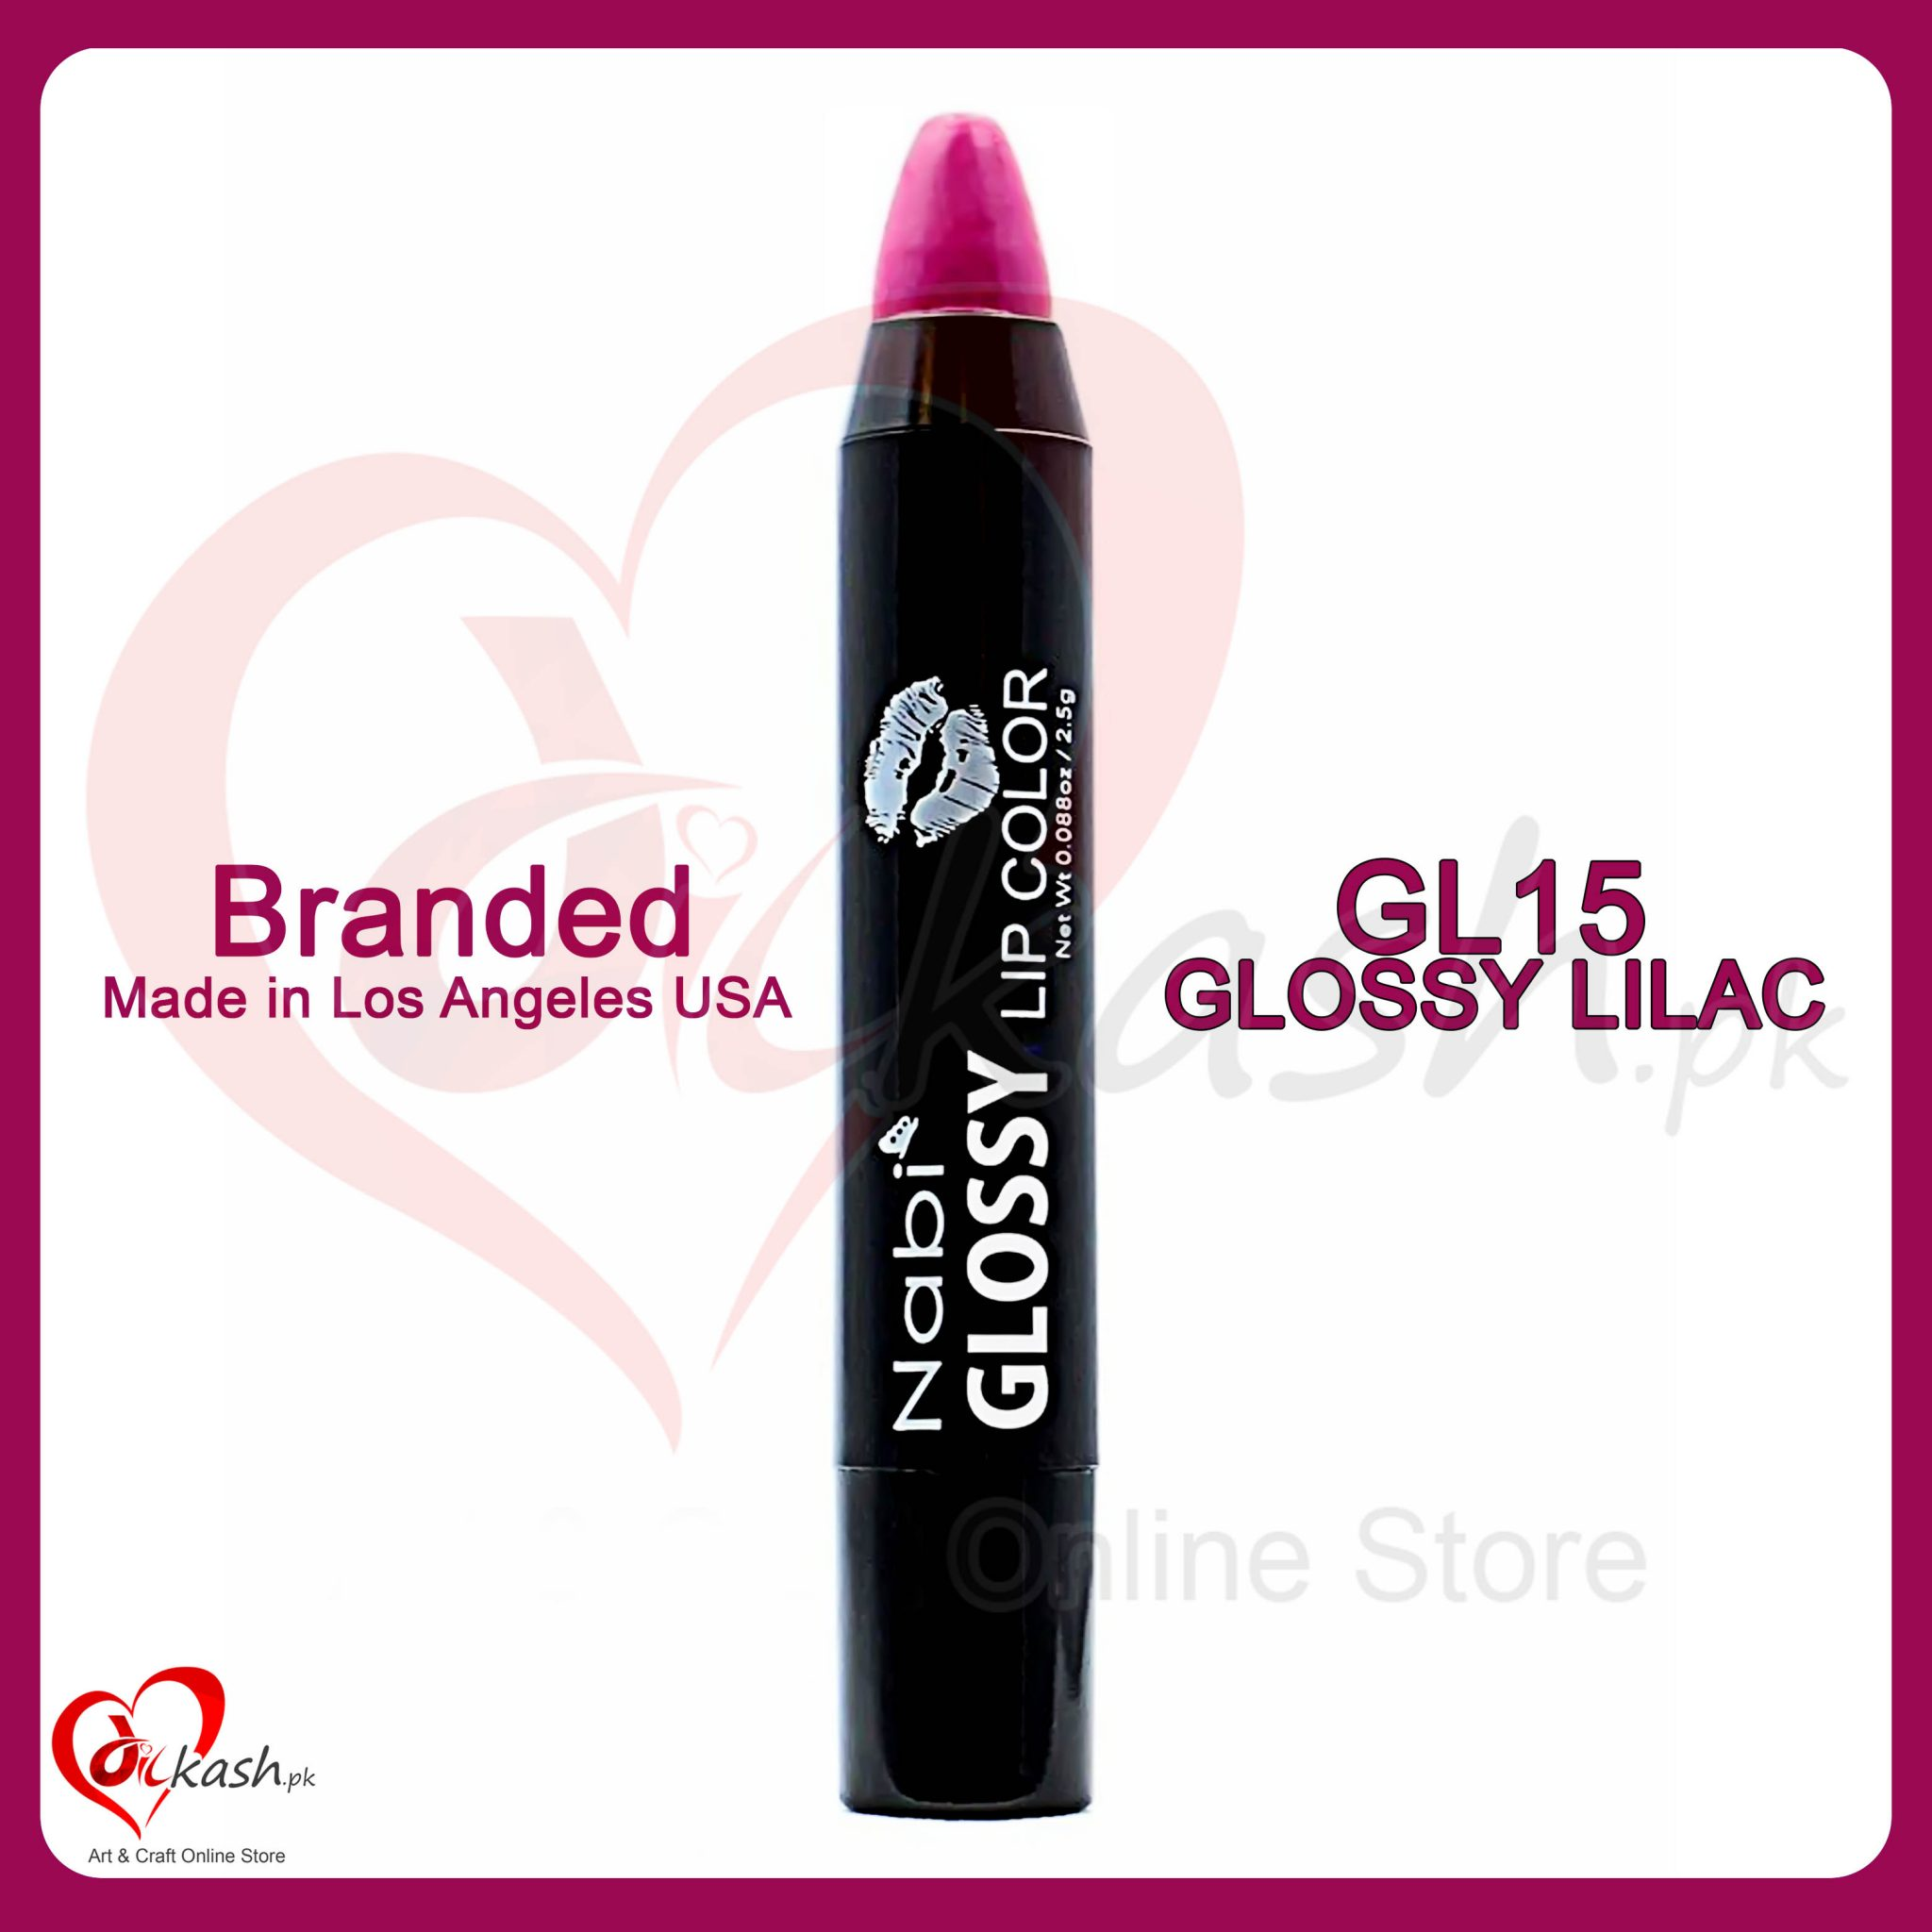 Beautiful Lipstick - Nabi Glossy Lip Color - GL15 Glossy Lilac